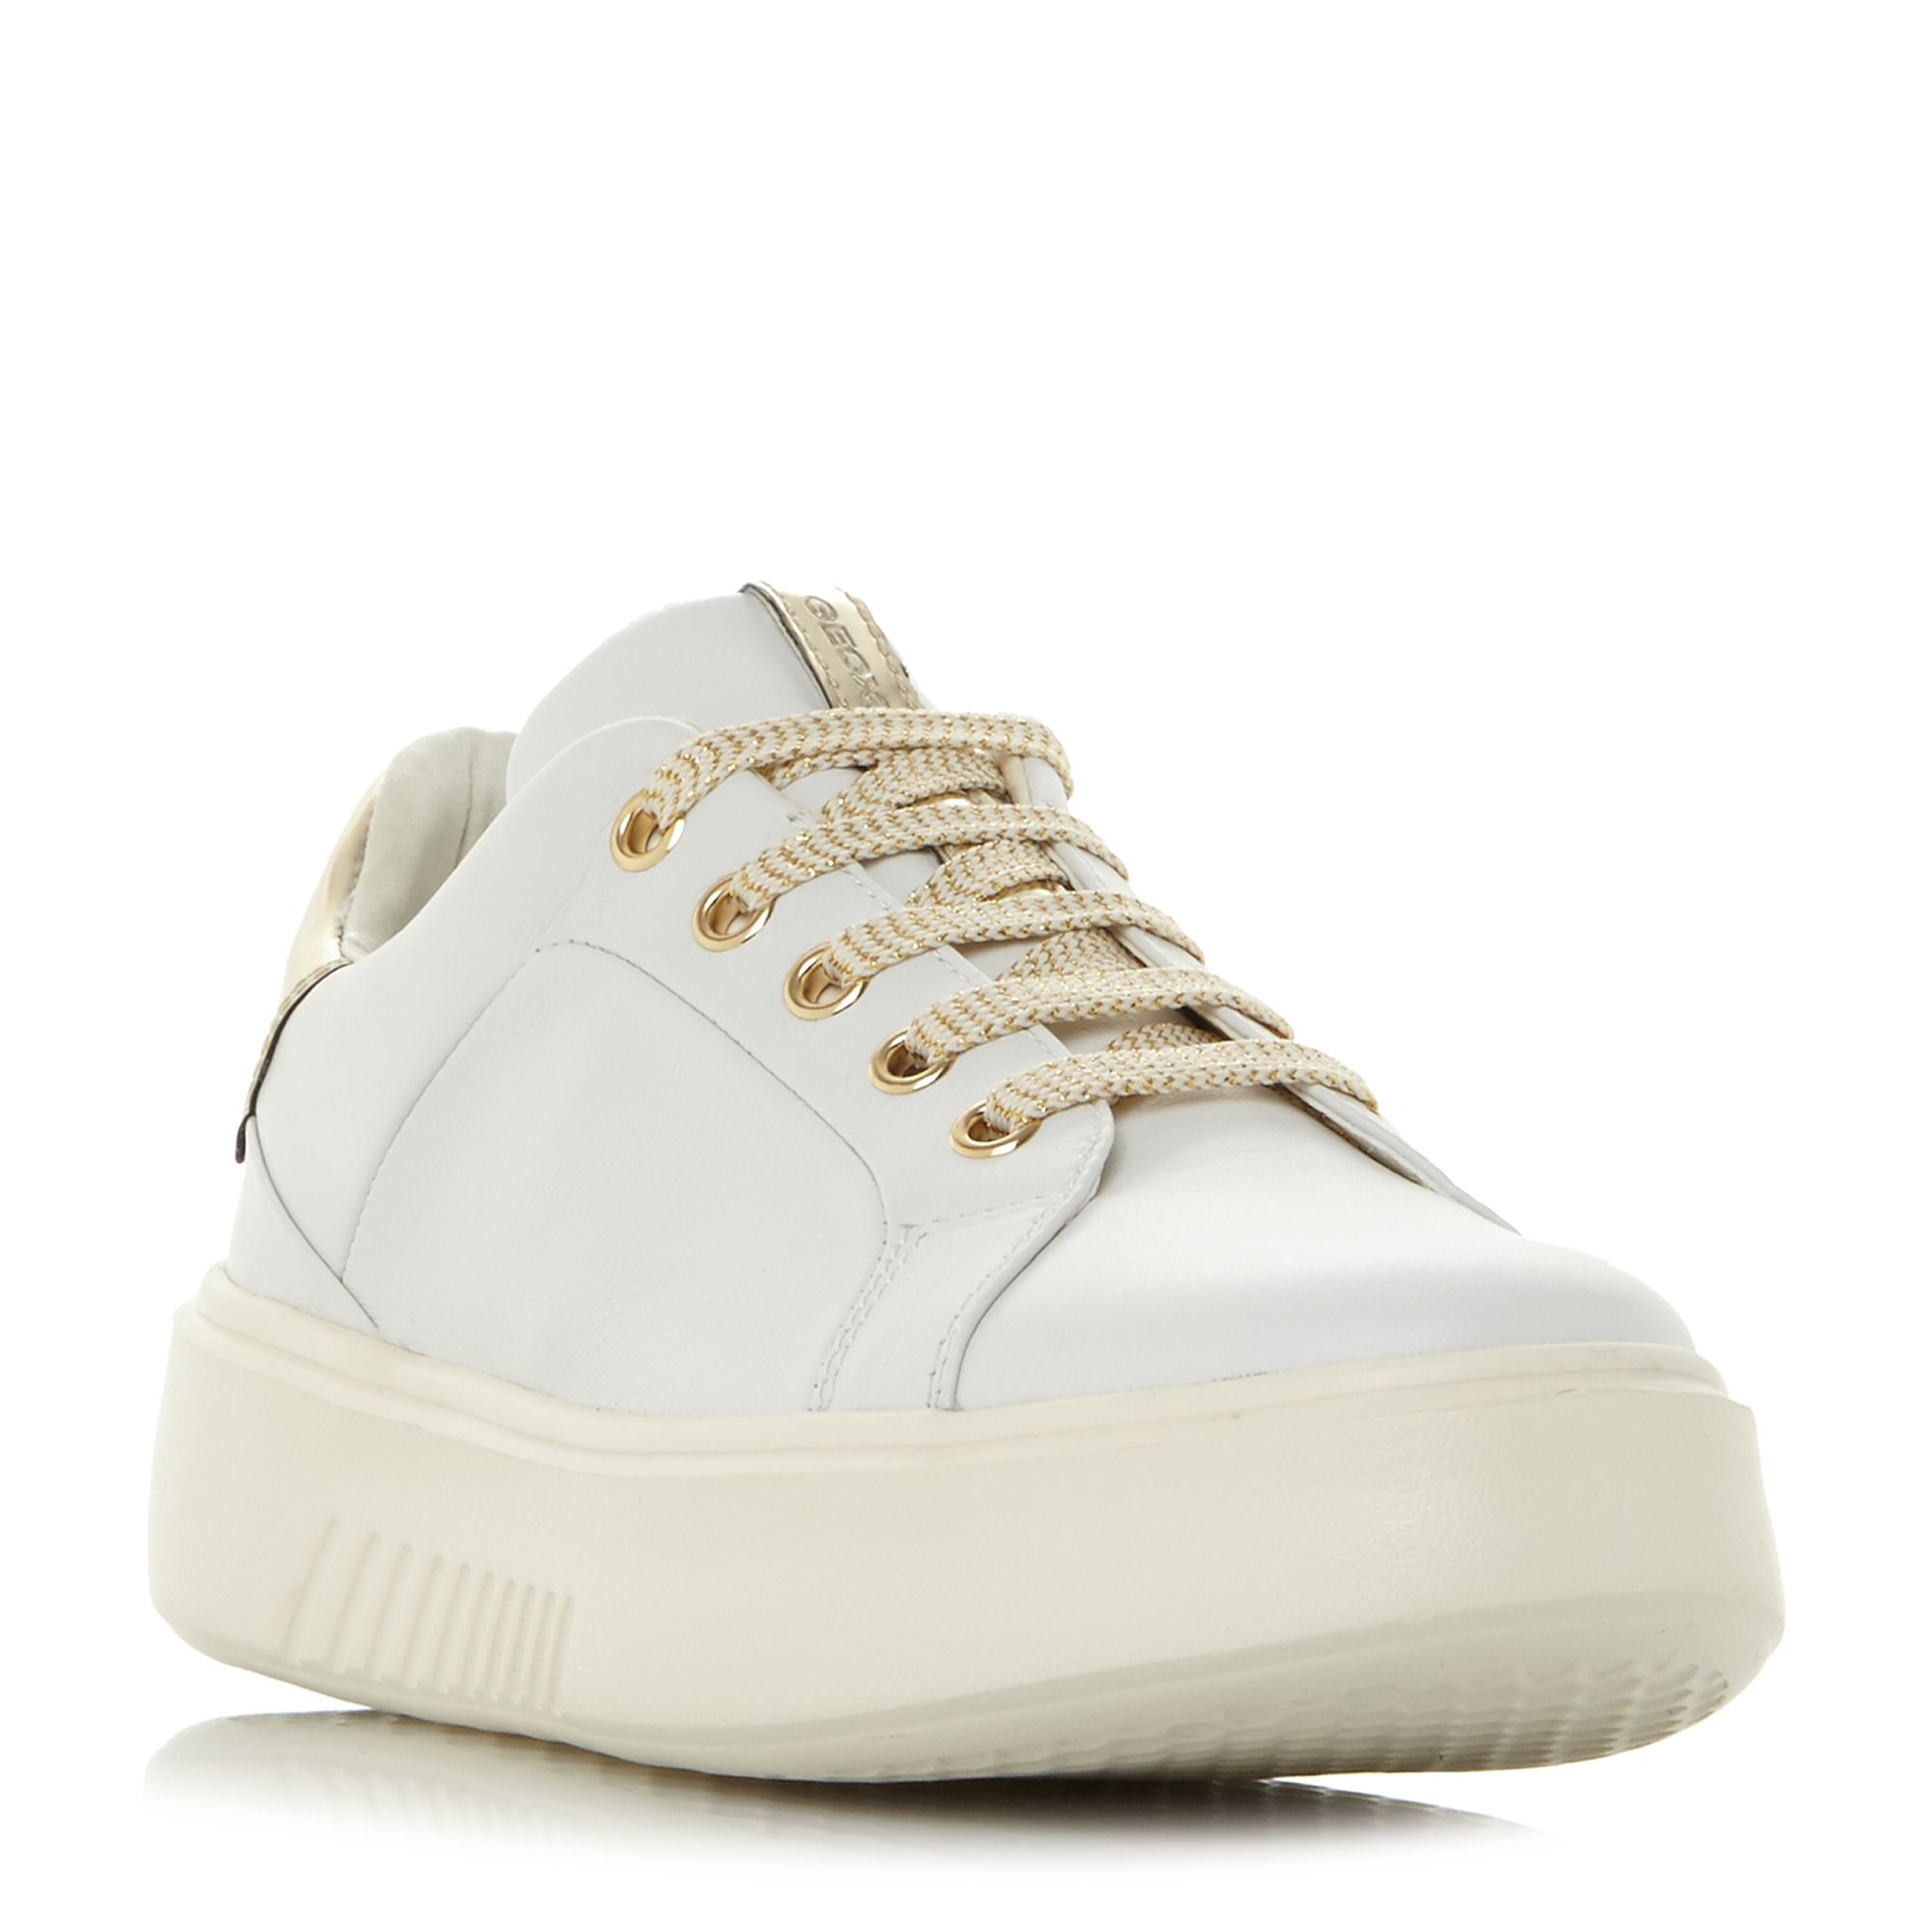 Geox D Nhenbus A Exaggerated Sole Trainers, White